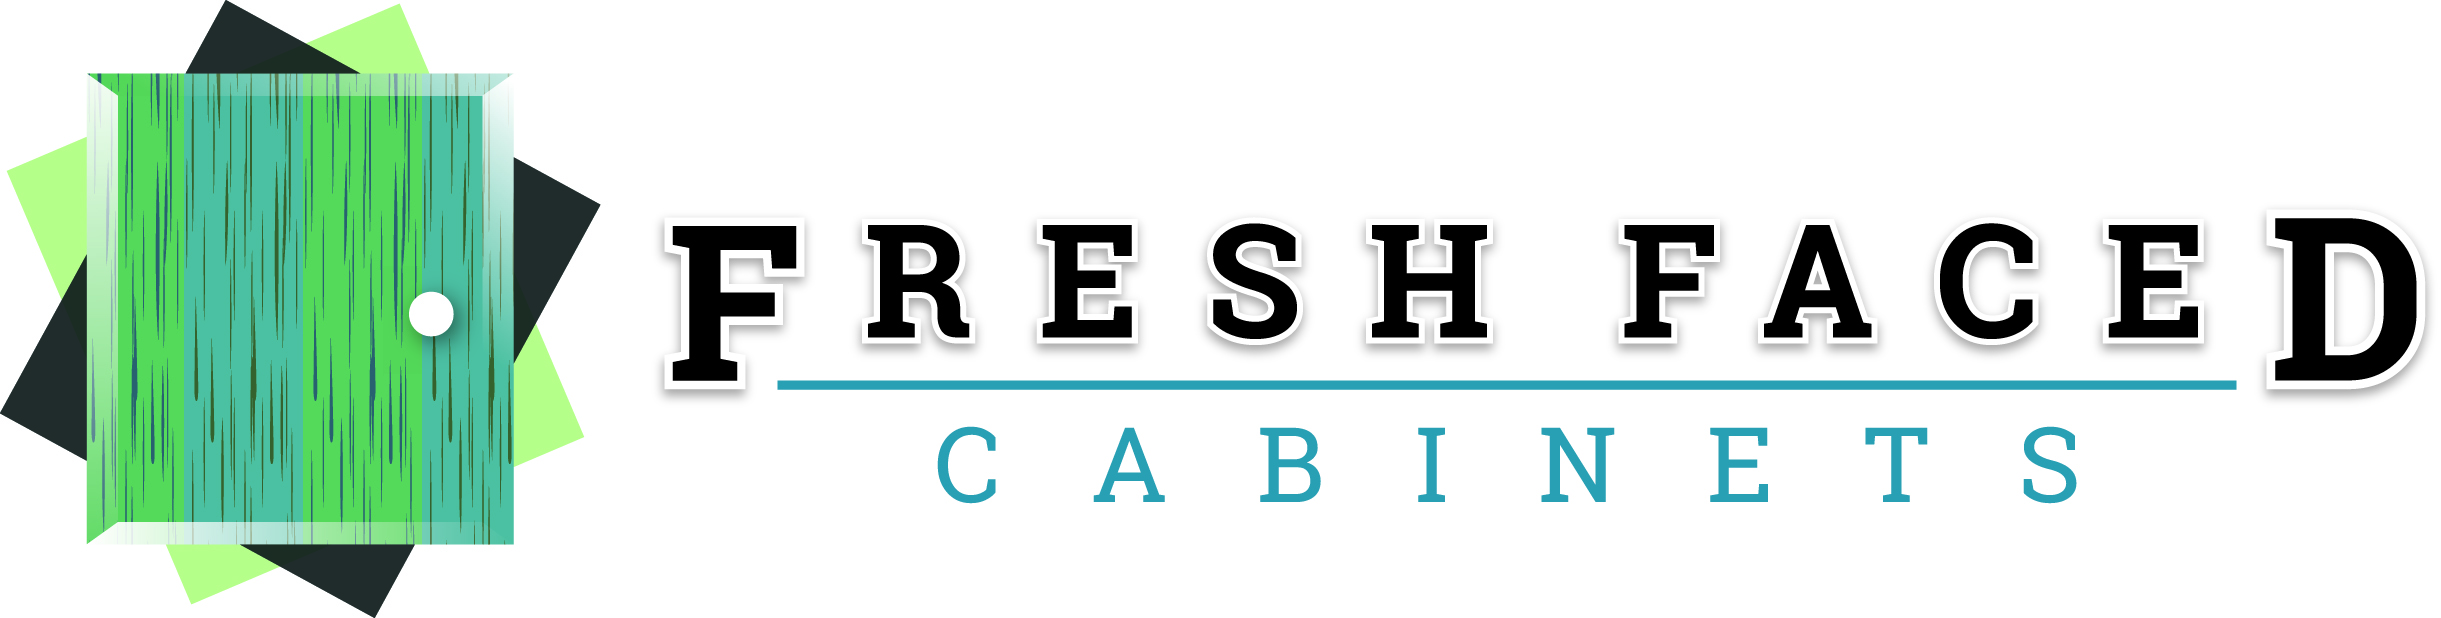 Fresh Faced Cabinets Logo